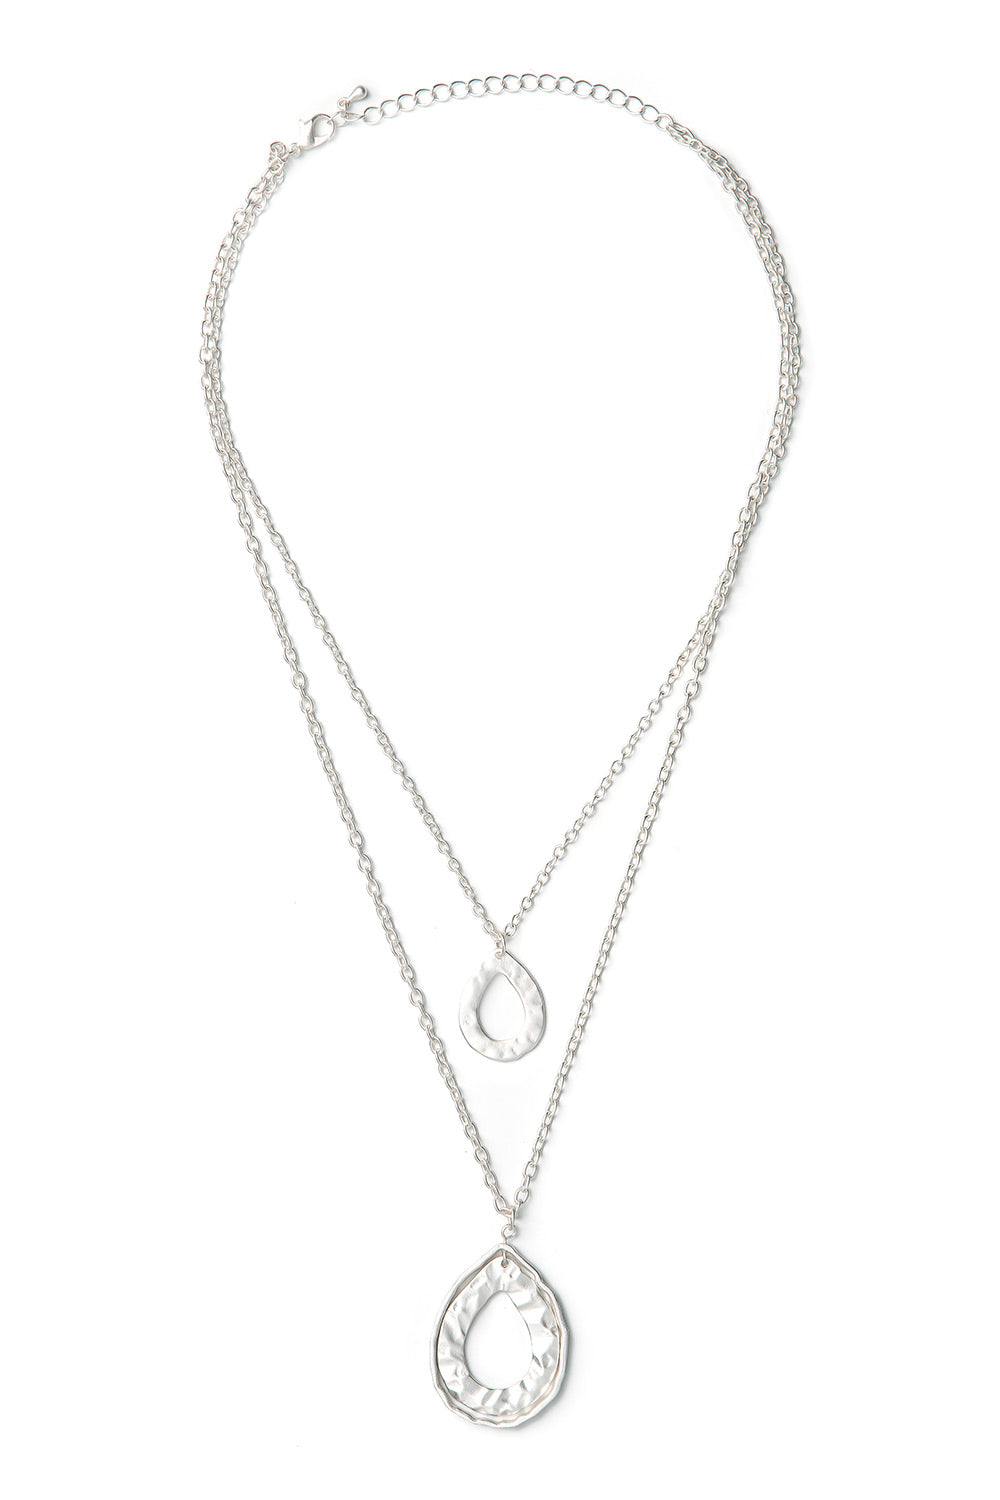 Type 2 Droplets Necklace